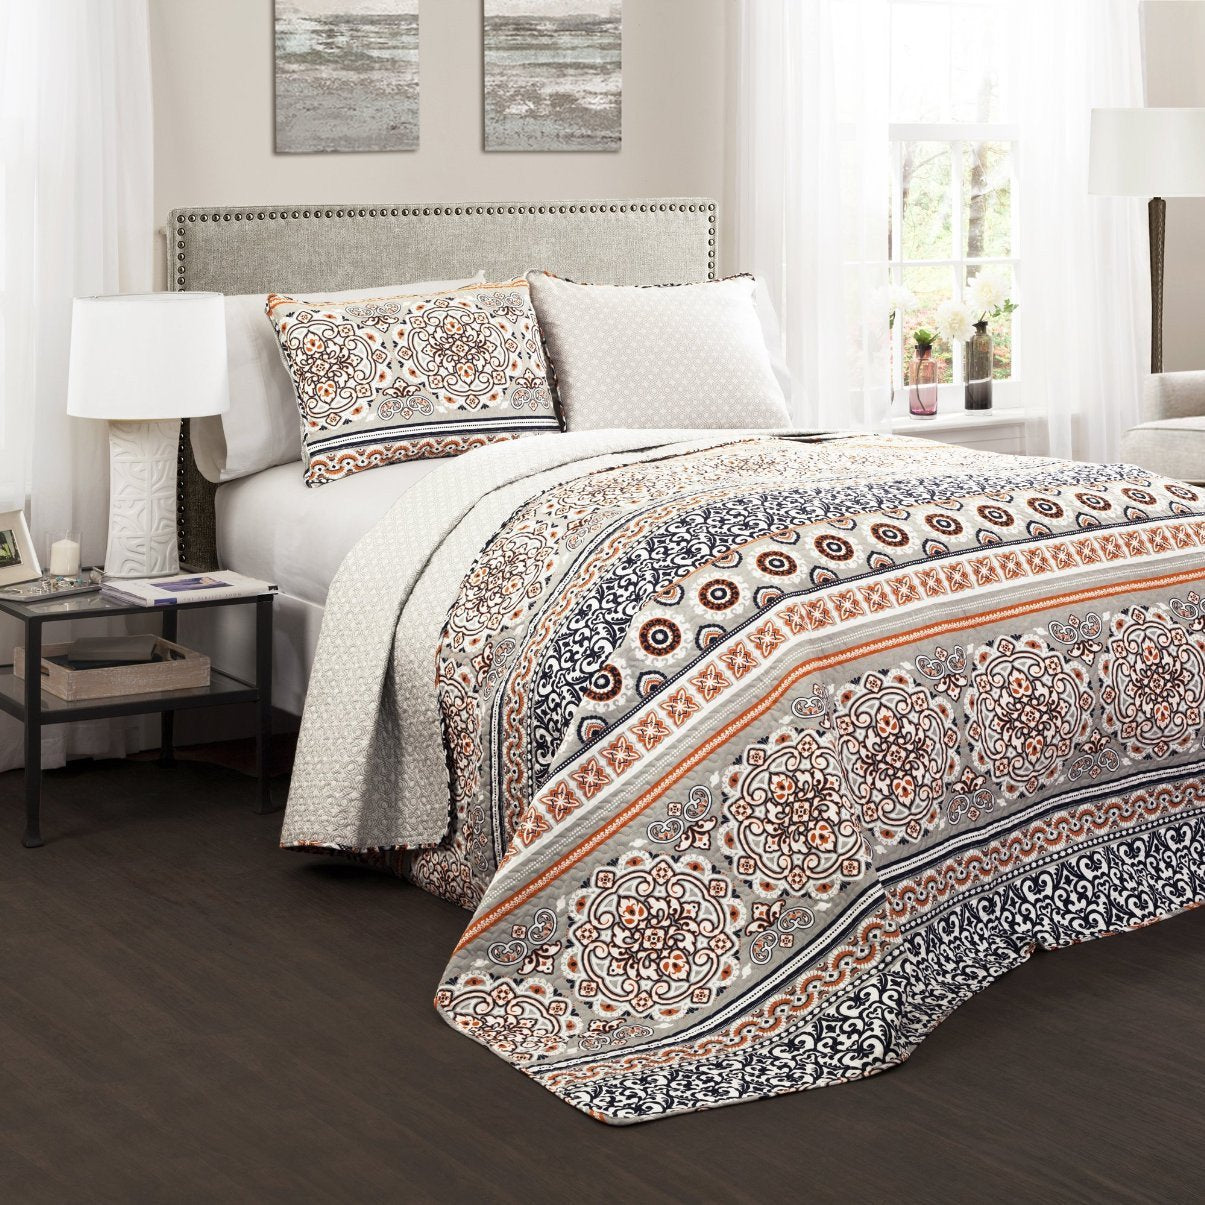 pillows bedding quilted gold inspired zari orange duvet peacock brocade indian and bedspreads set king